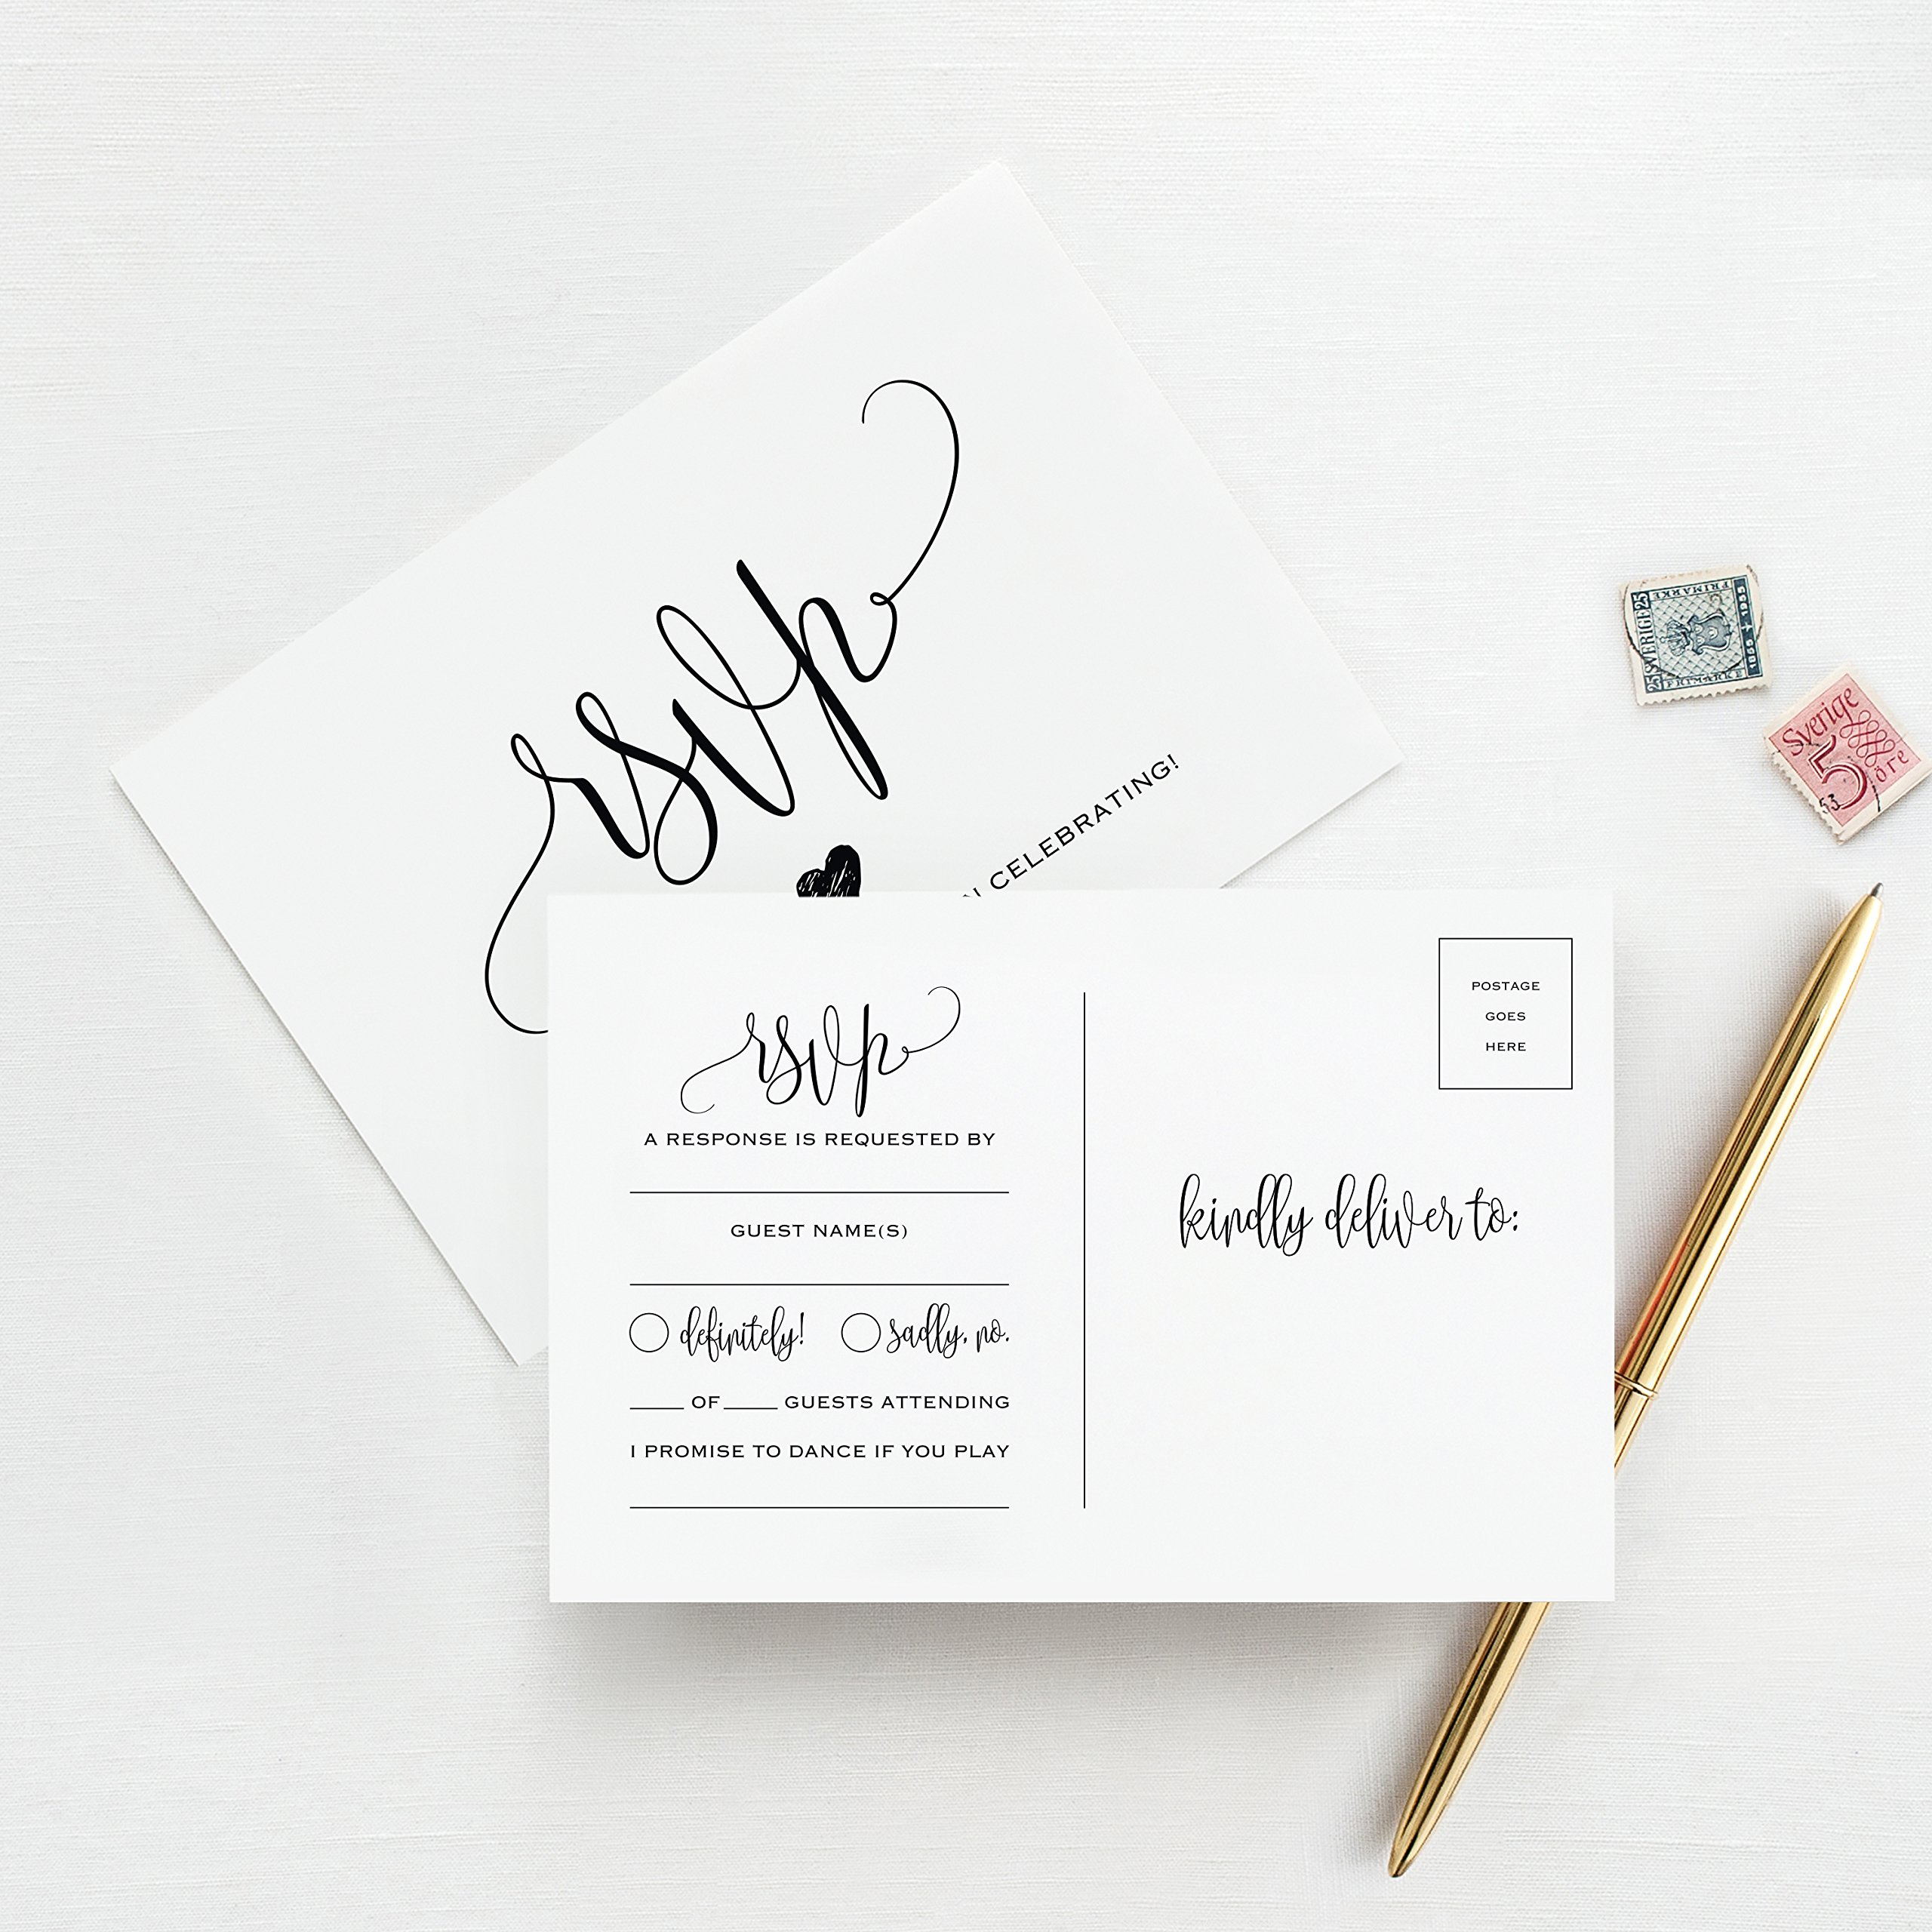 RSVP Postcards for Wedding, 50 Pack of Response Cards, Reply Cards Perfect for Bridal Shower, Rehearsal Dinner, Engagement Party, Baby Shower or Any Special Occasion - from Bliss Paper Boutique